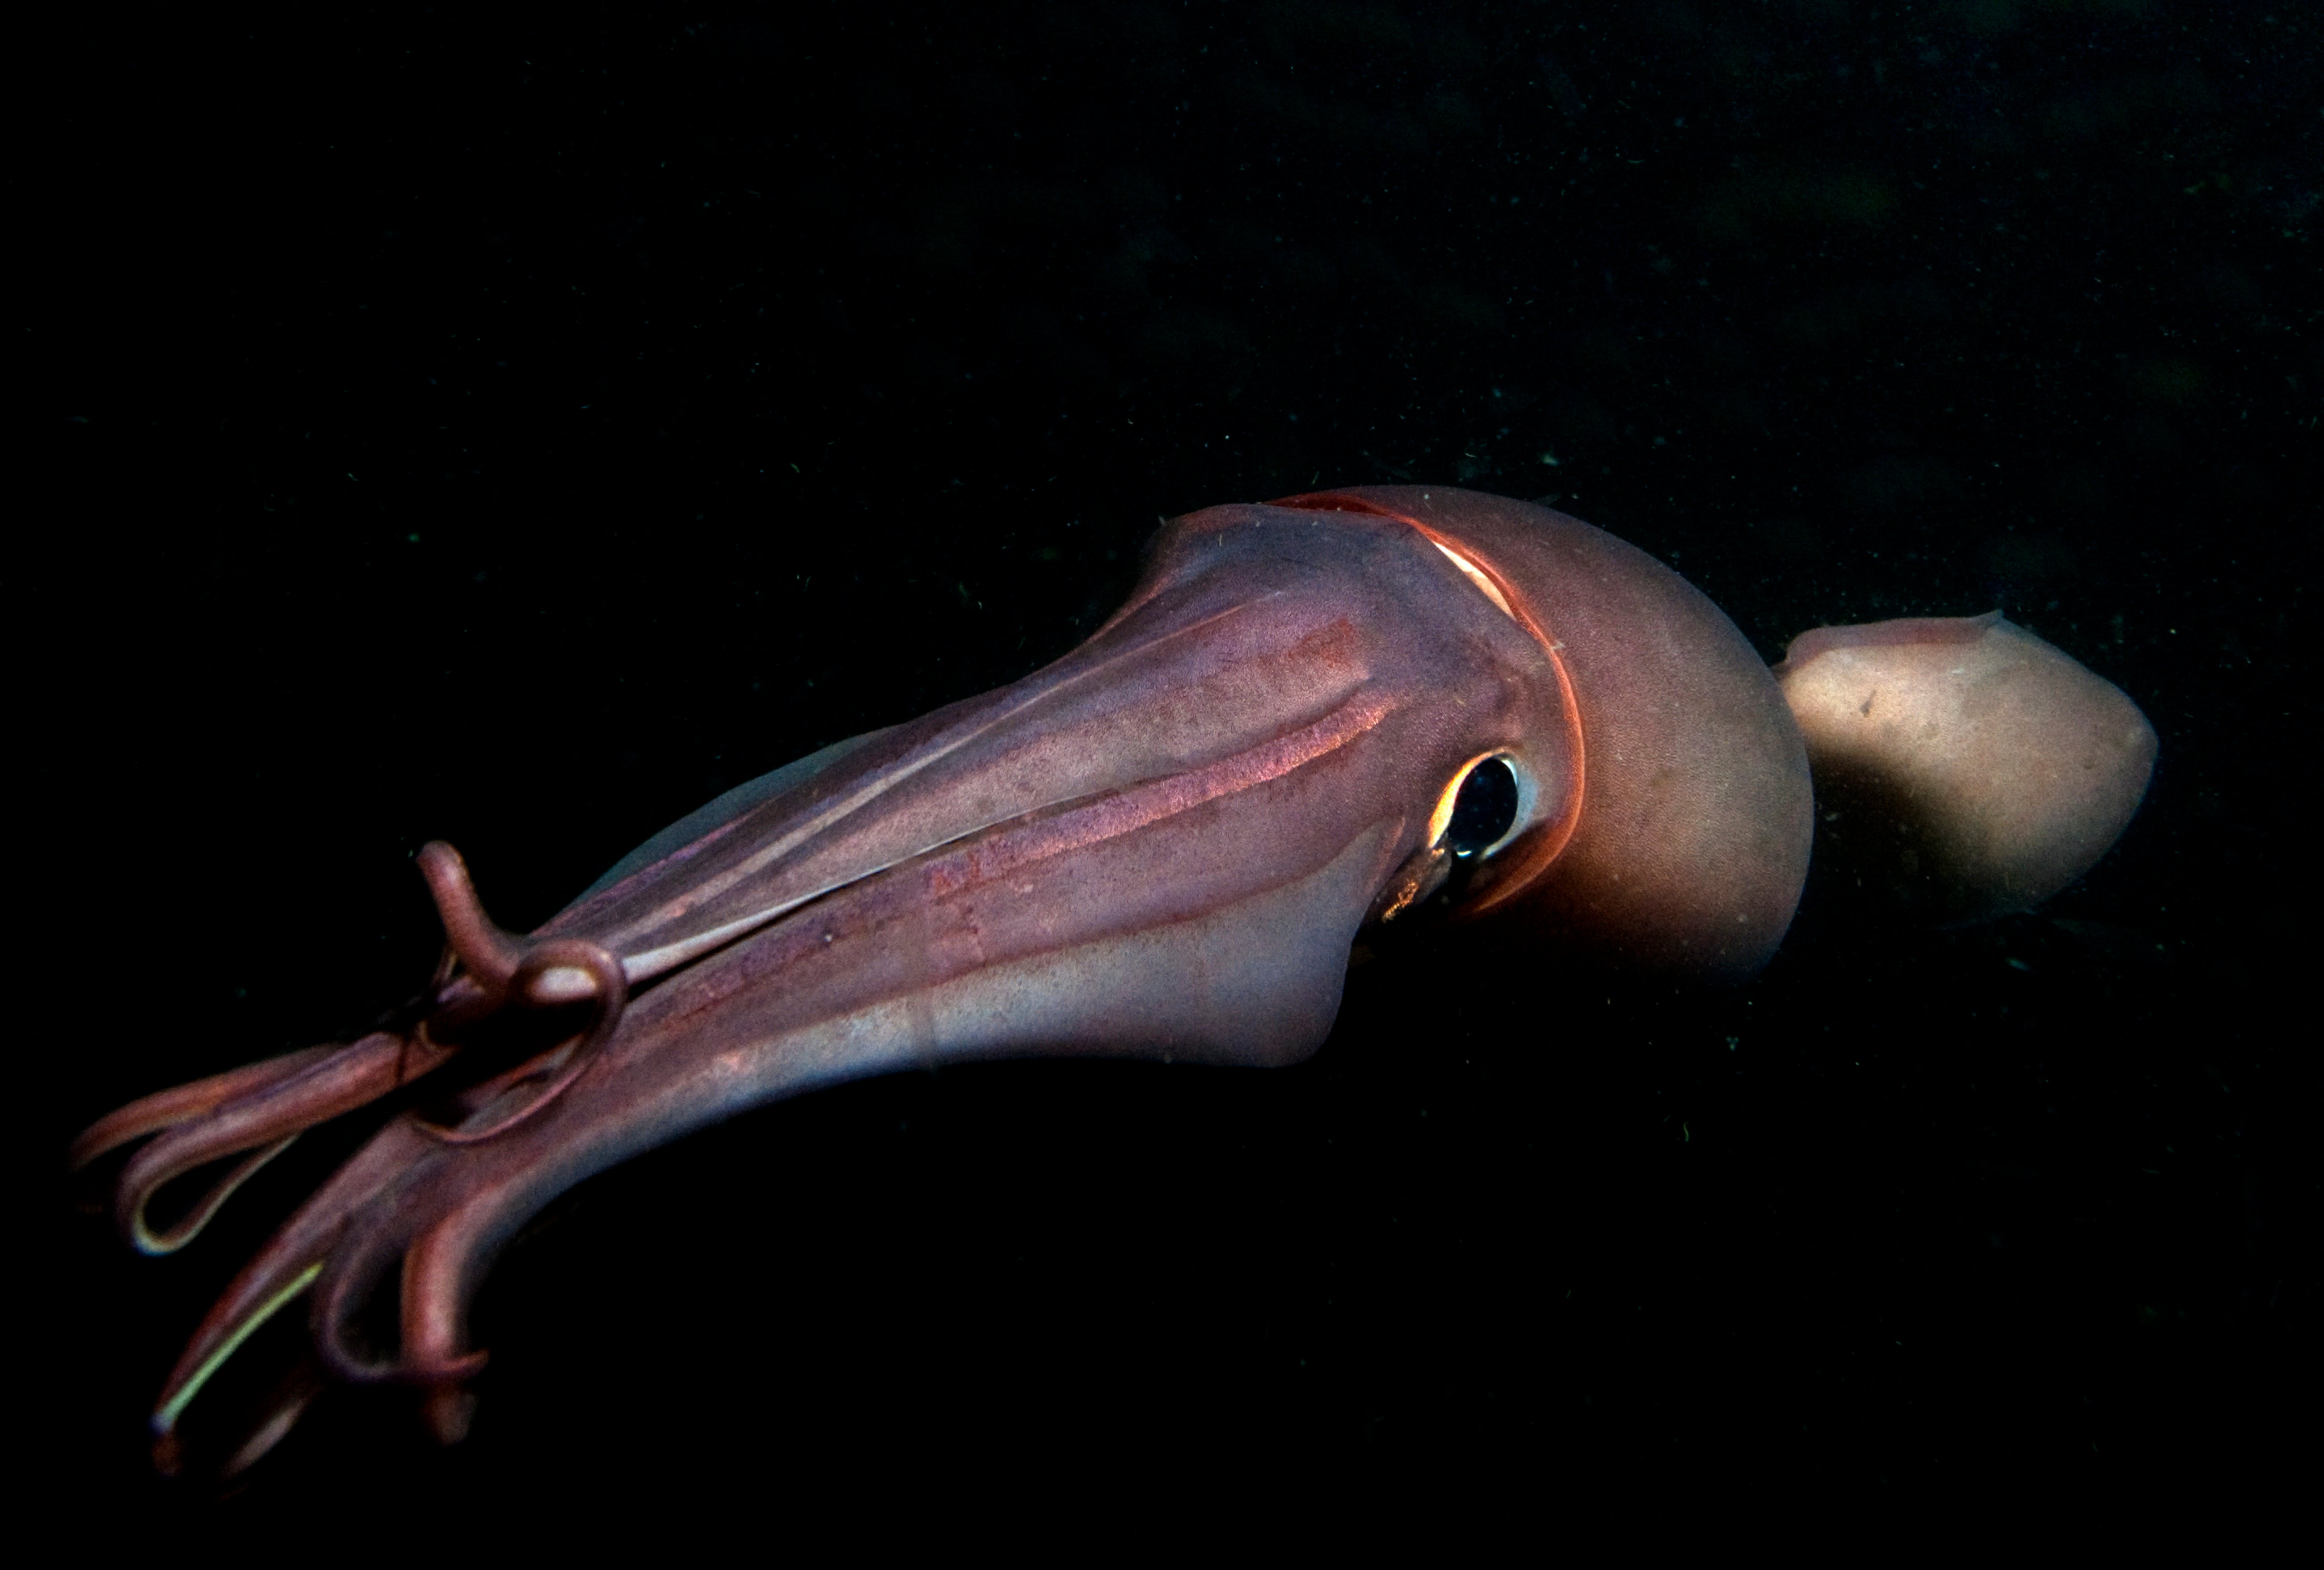 Squid Glowing Skin Patterns May Be Code